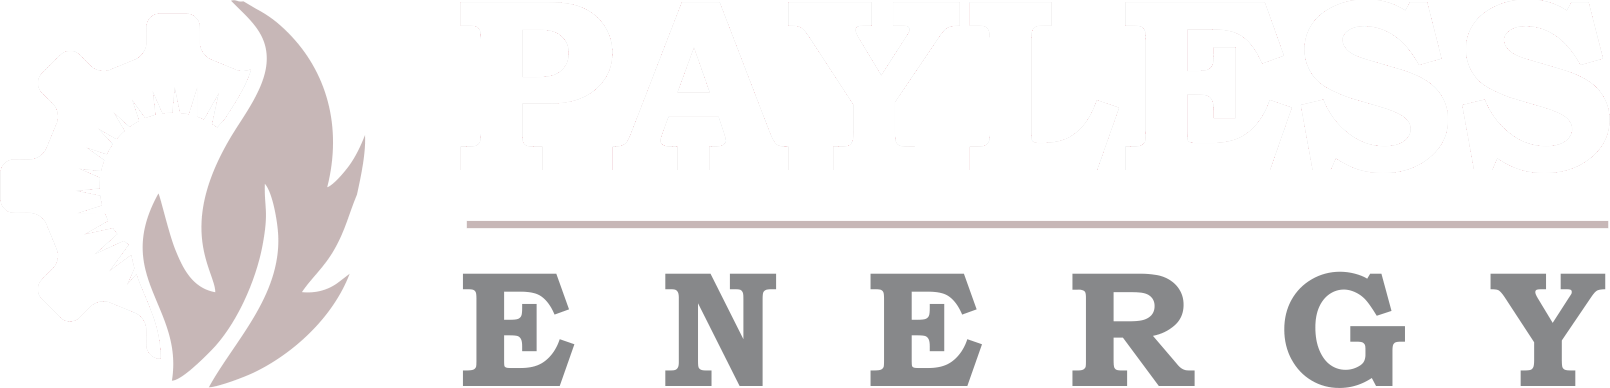 Payless Energy LLC | Supplier of Natural Gas and Electricity